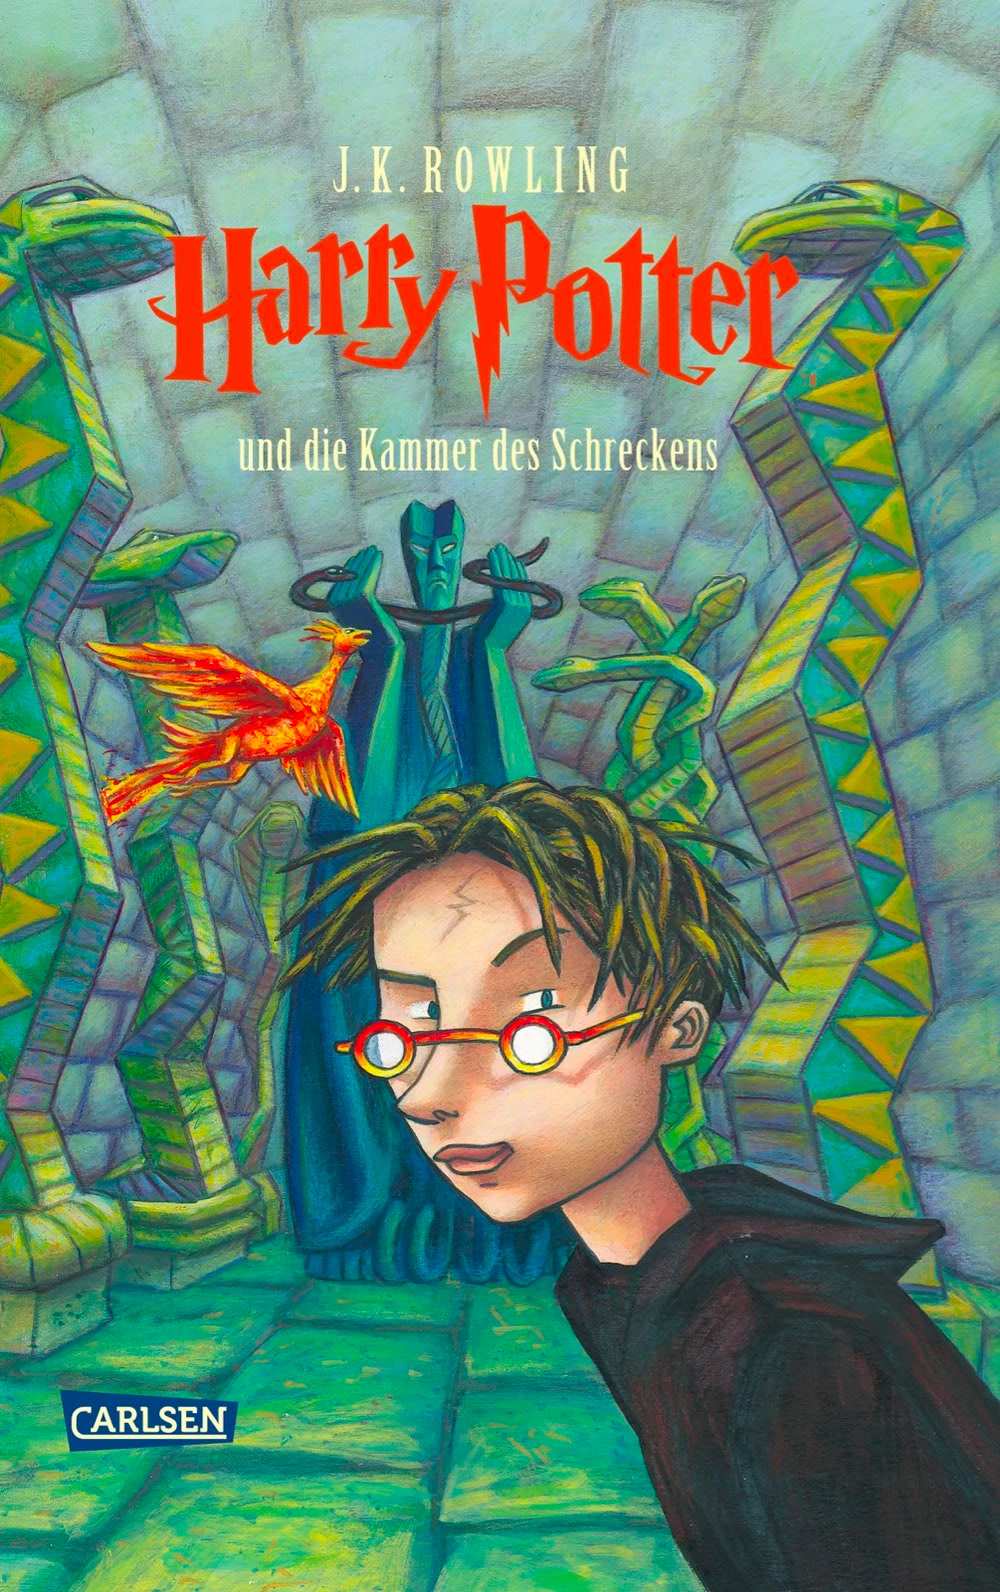 'Chamber of Secrets' German edition